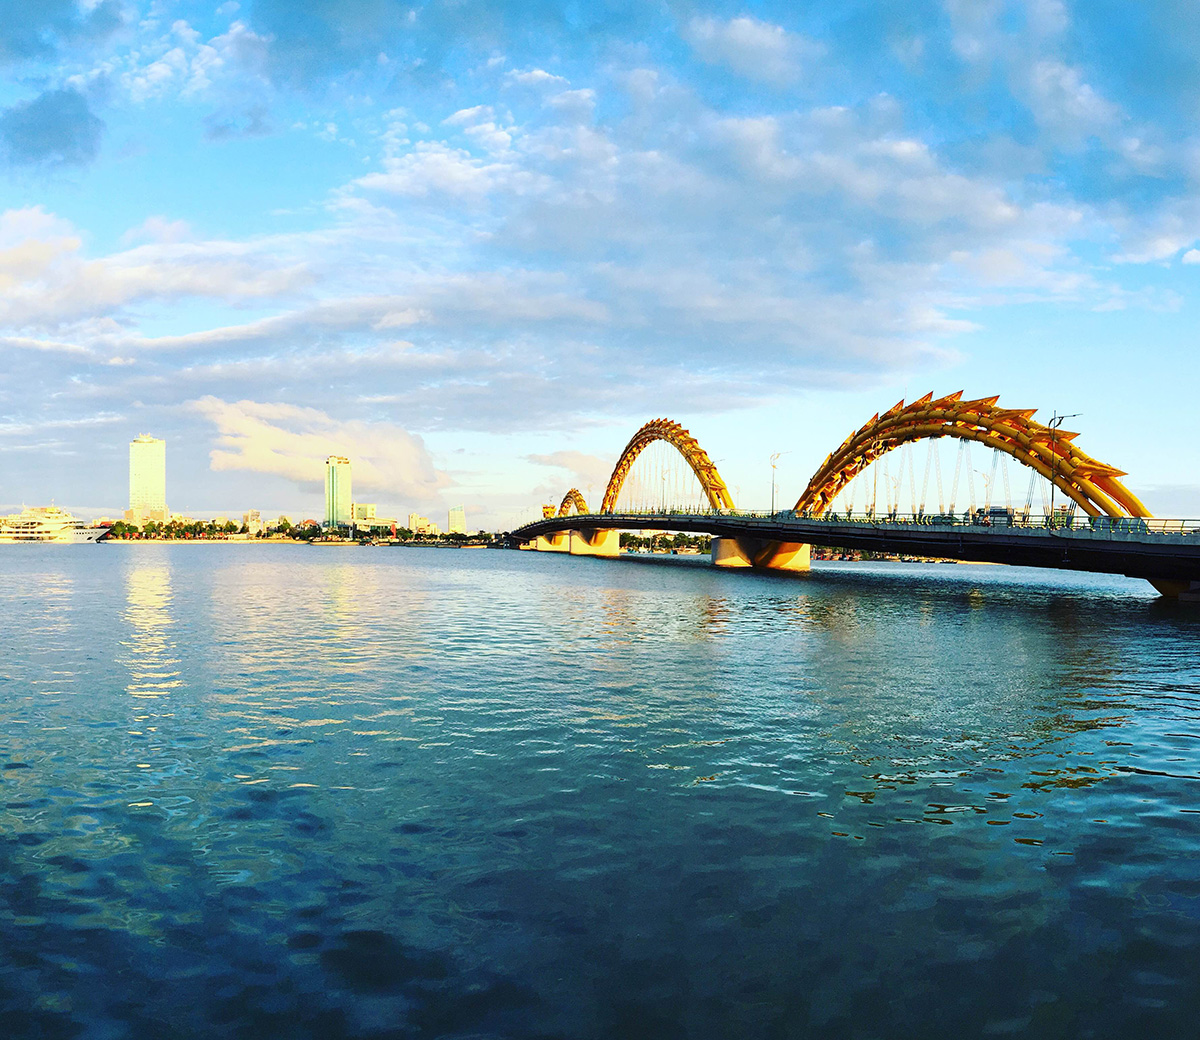 Da Nang - Dragon Bridge